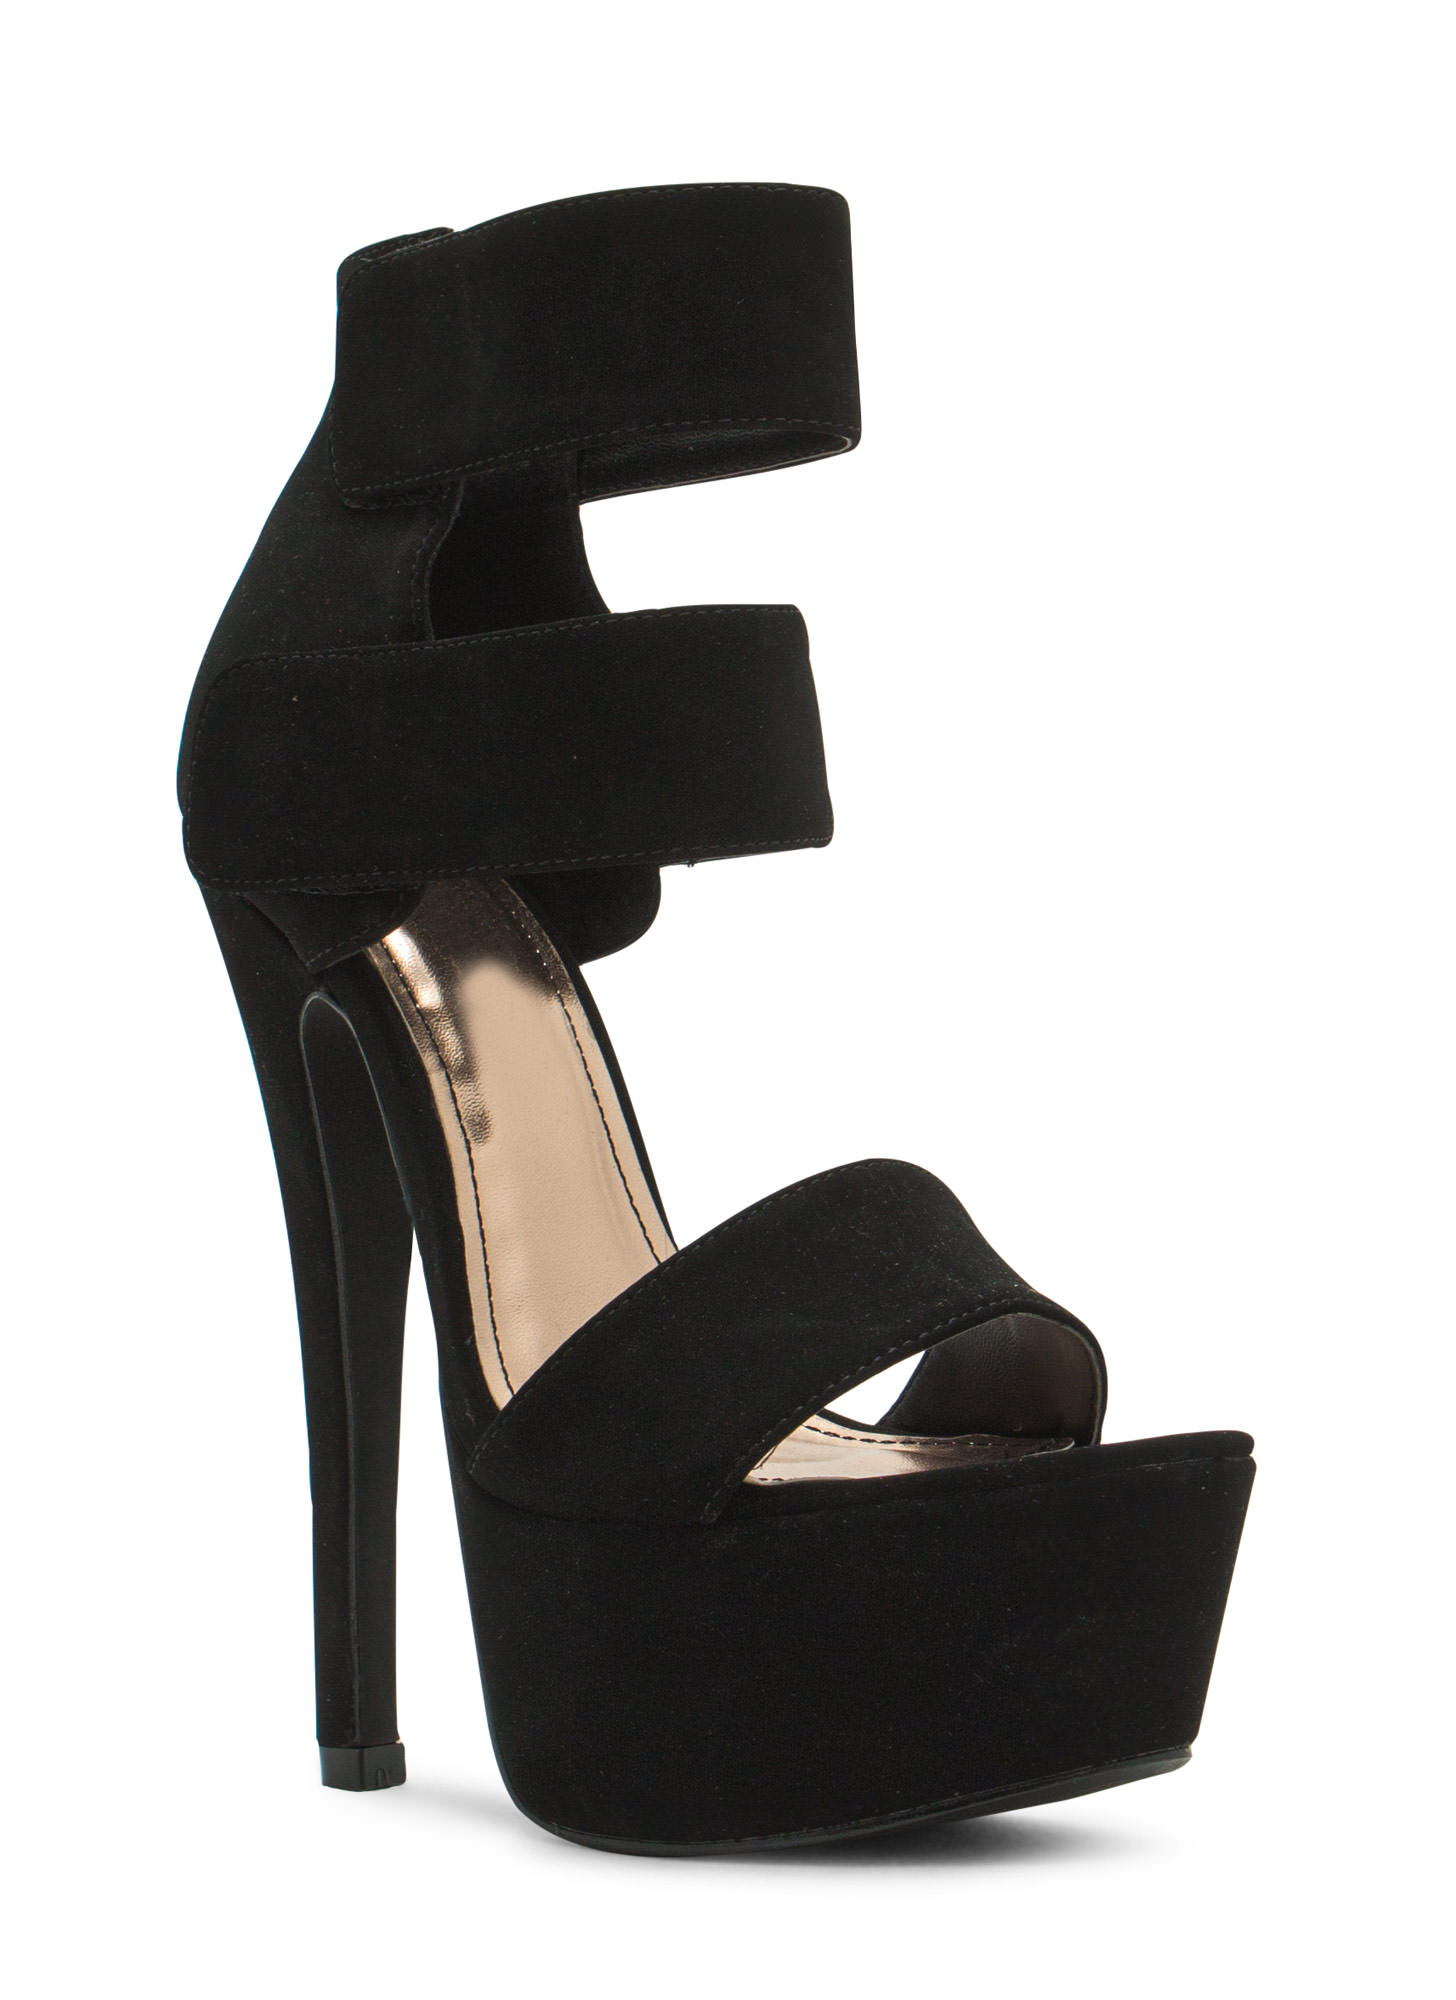 Double Trouble Strappy Platform Heels BLACK